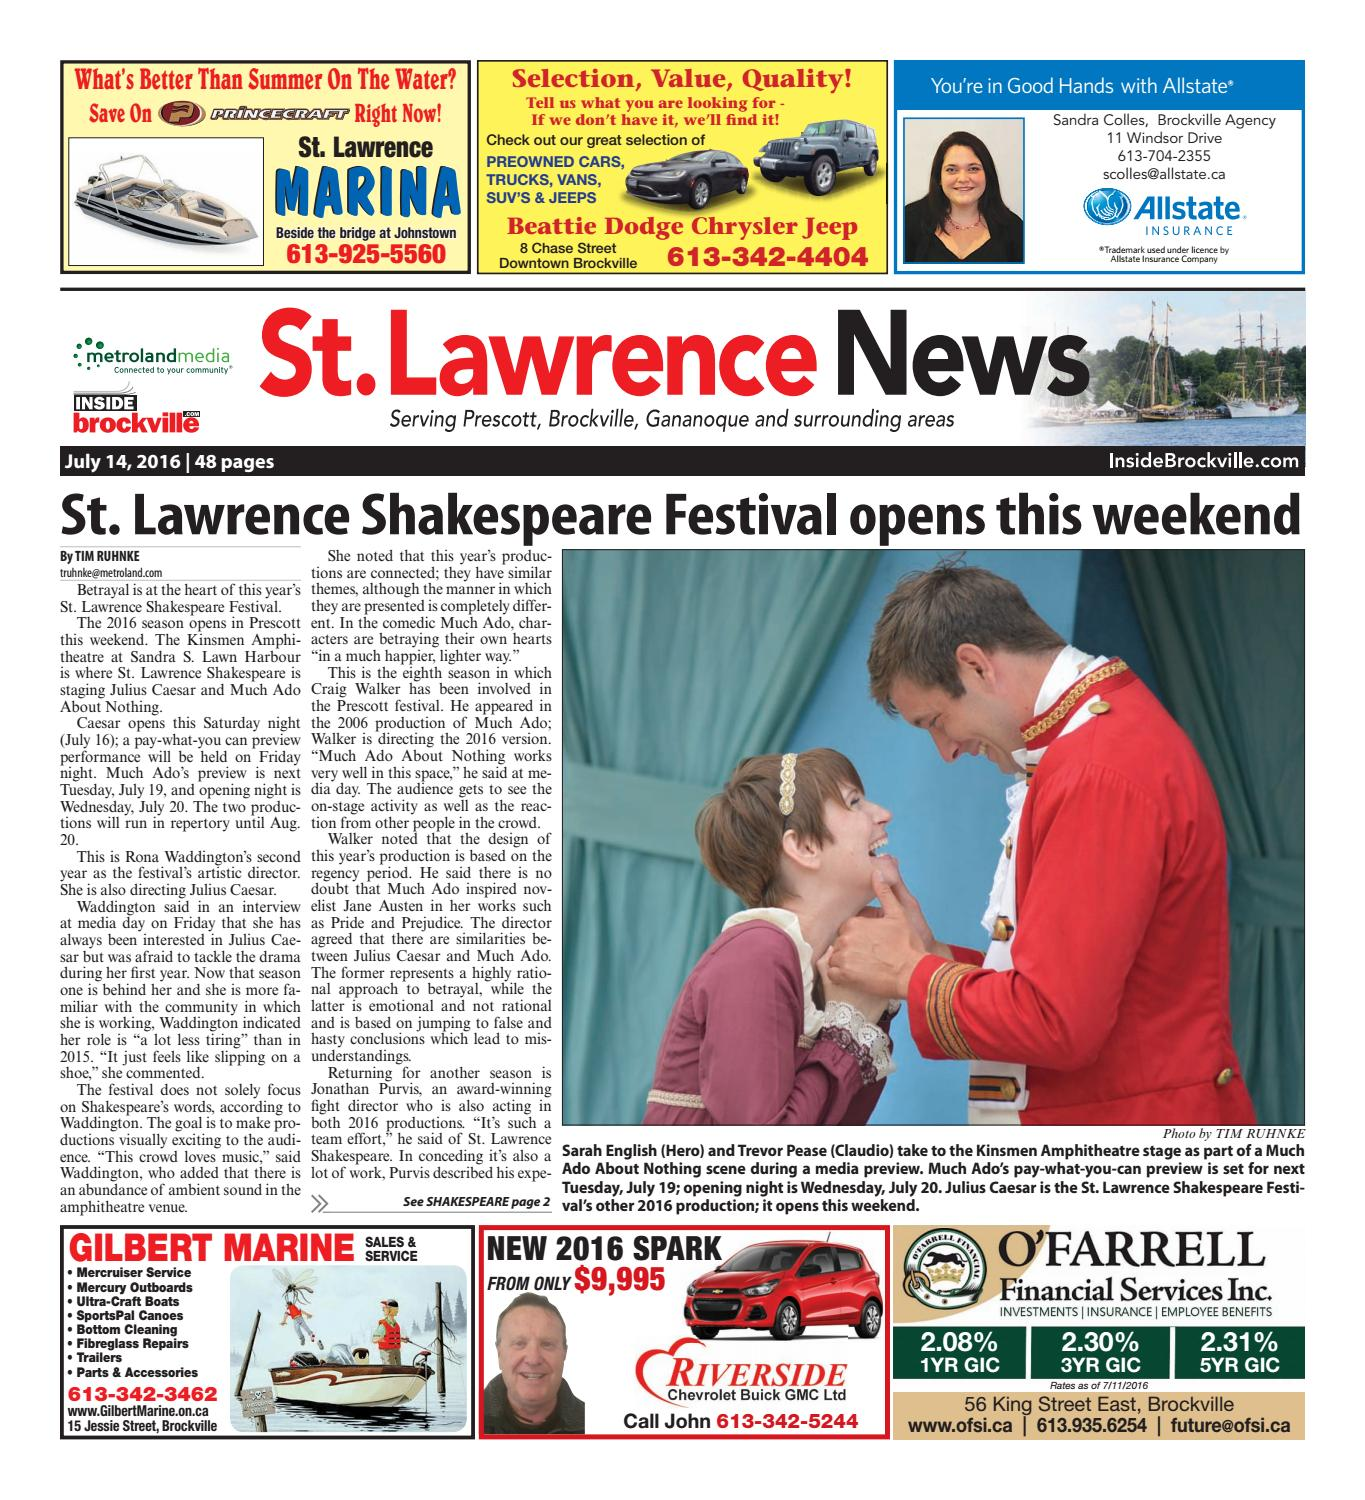 Stlawrence071416 by Metroland East - St. Lawrence News - issuu